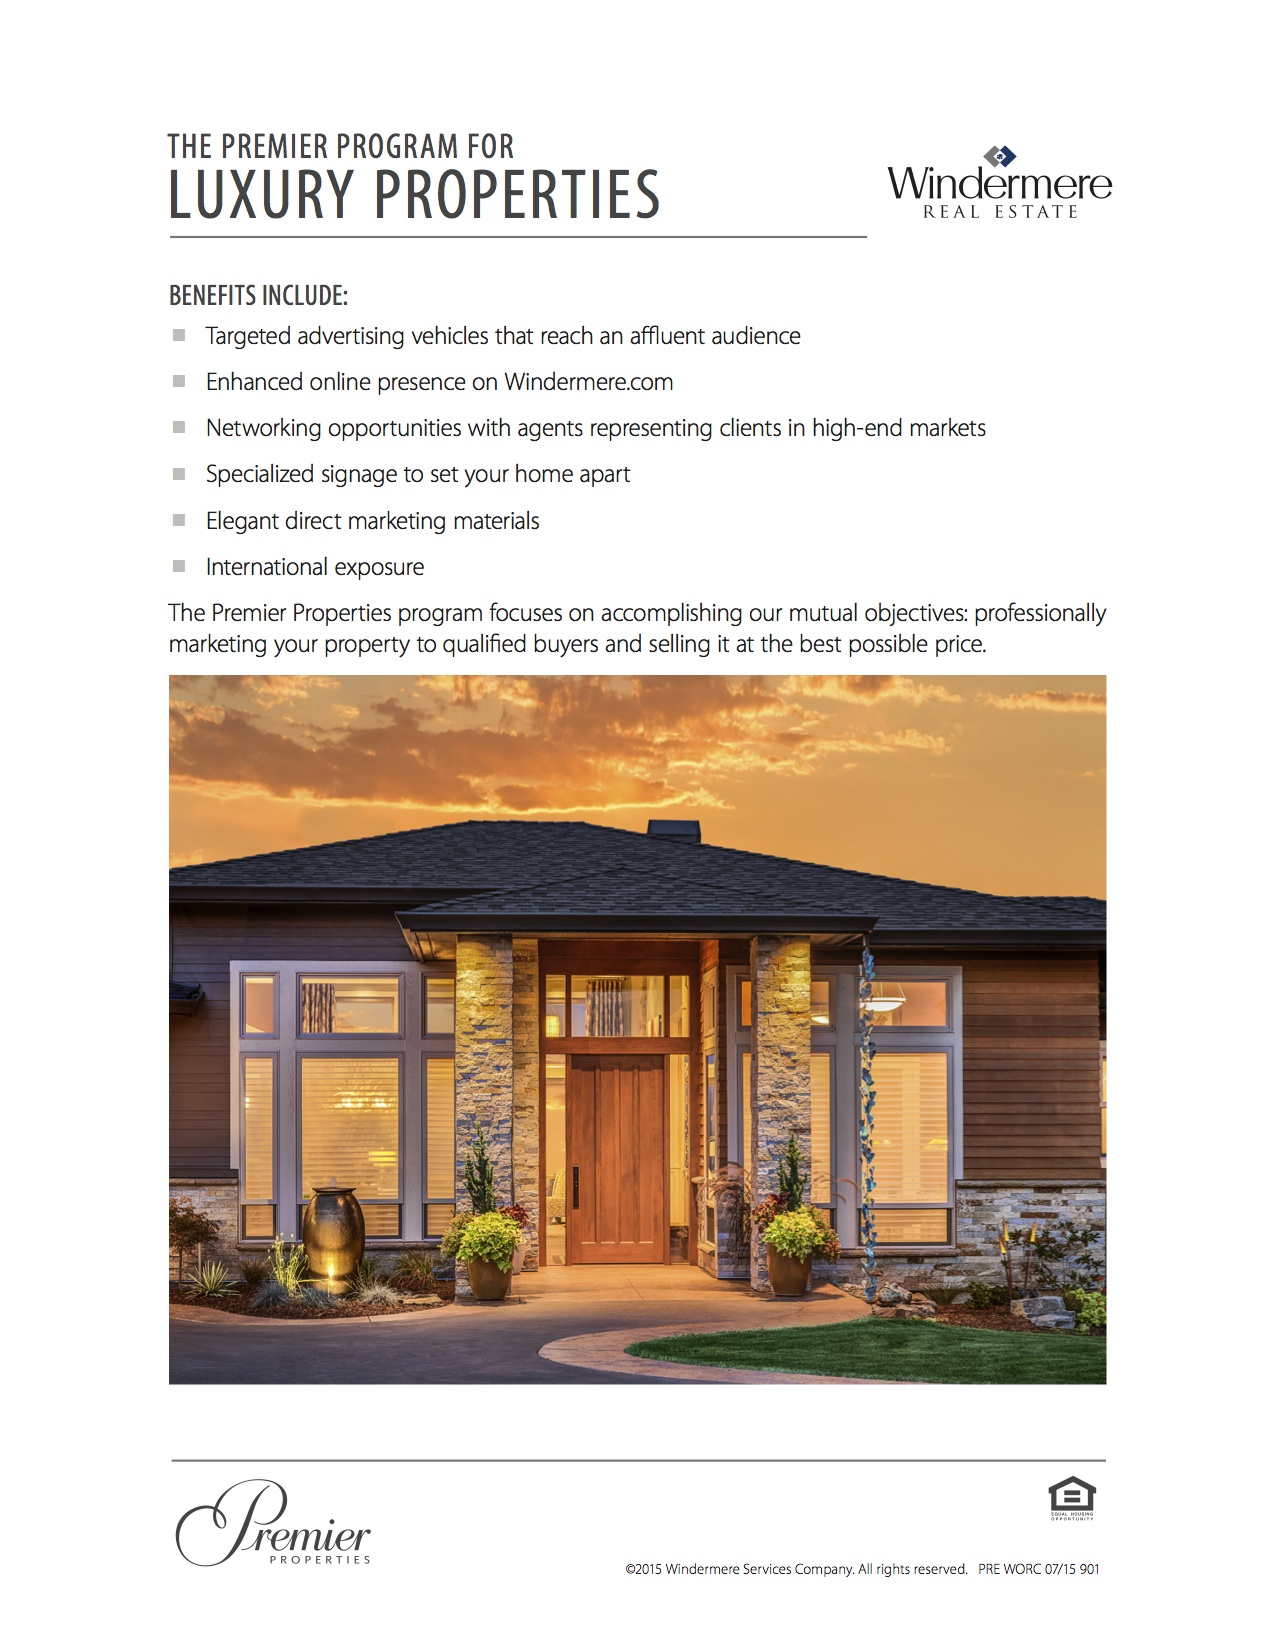 901 Luxury Properties Program-2